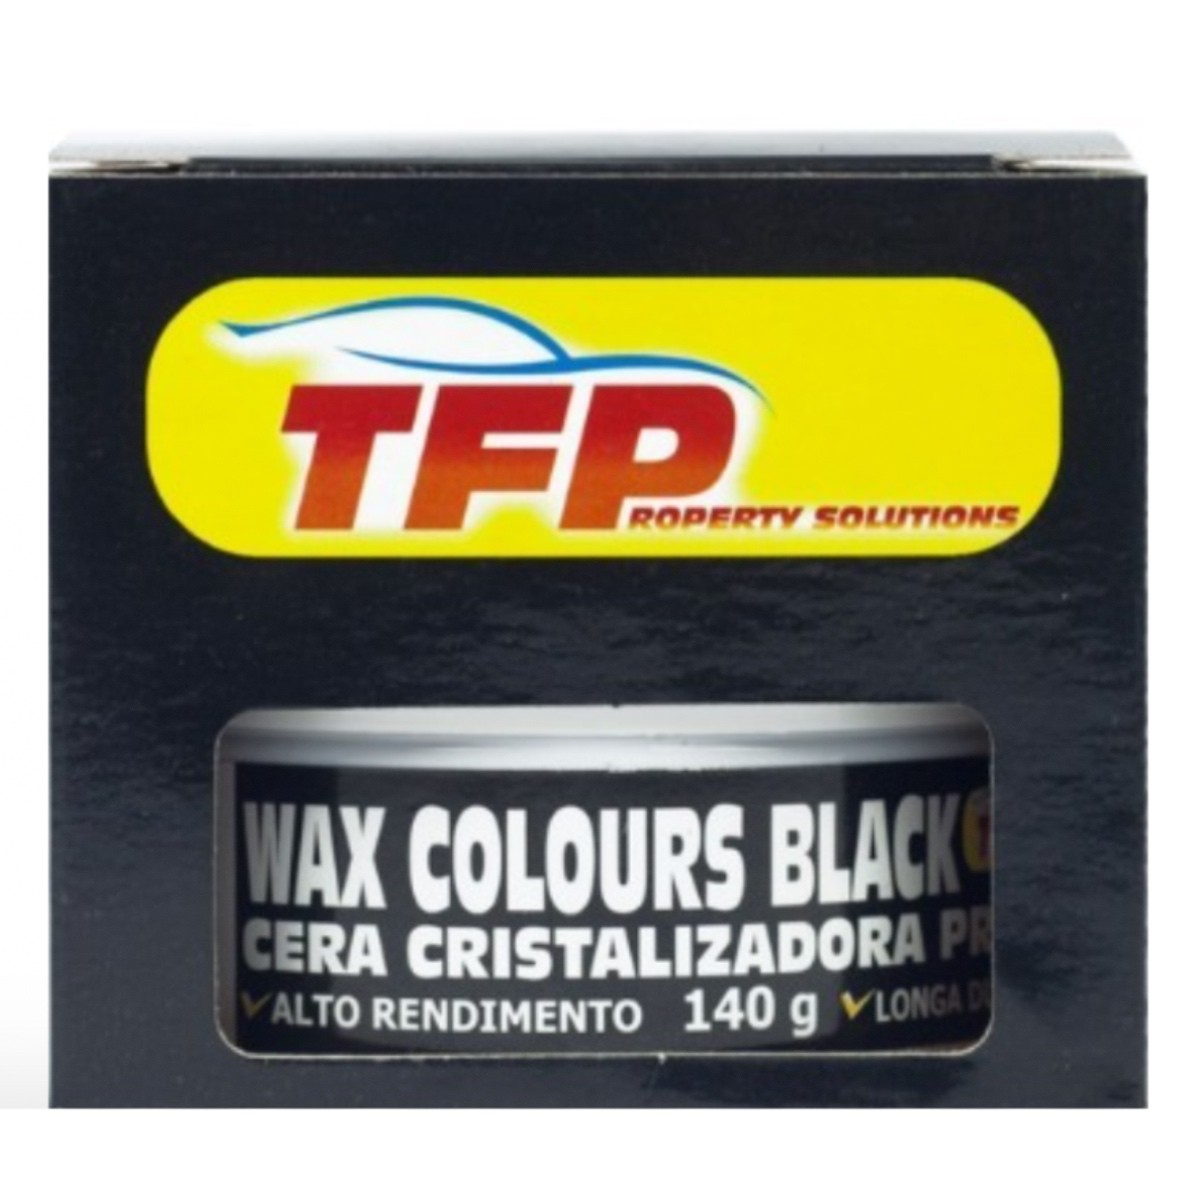 Cera Cristalizadora Wax Color Red + Wax Color Black 140g